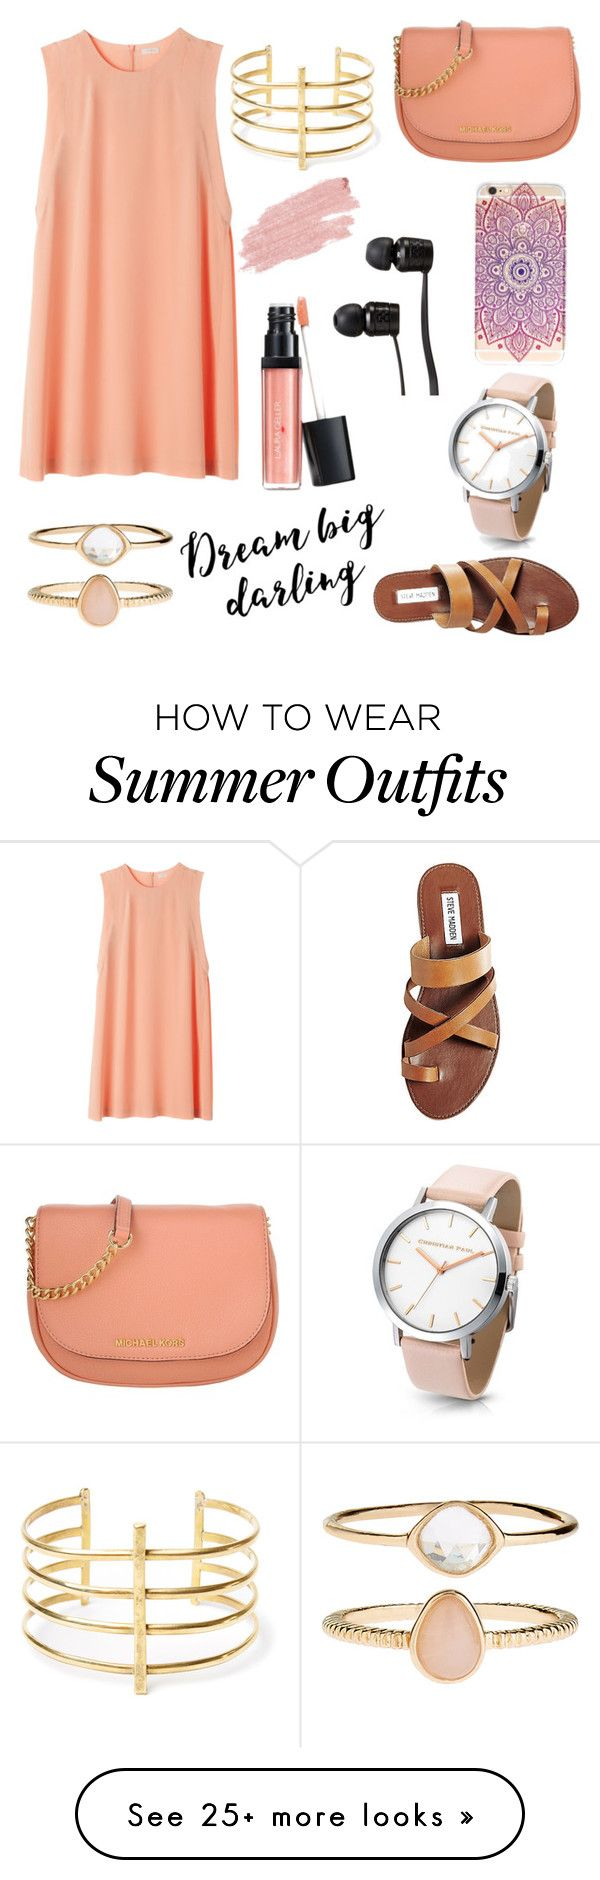 """Summer Outfit #75"" by liziekay on Polyvore featuring Steve Madden, Michael Kors, Vans, BauXo, Accessorize, Laura Geller and Jane Iredale"